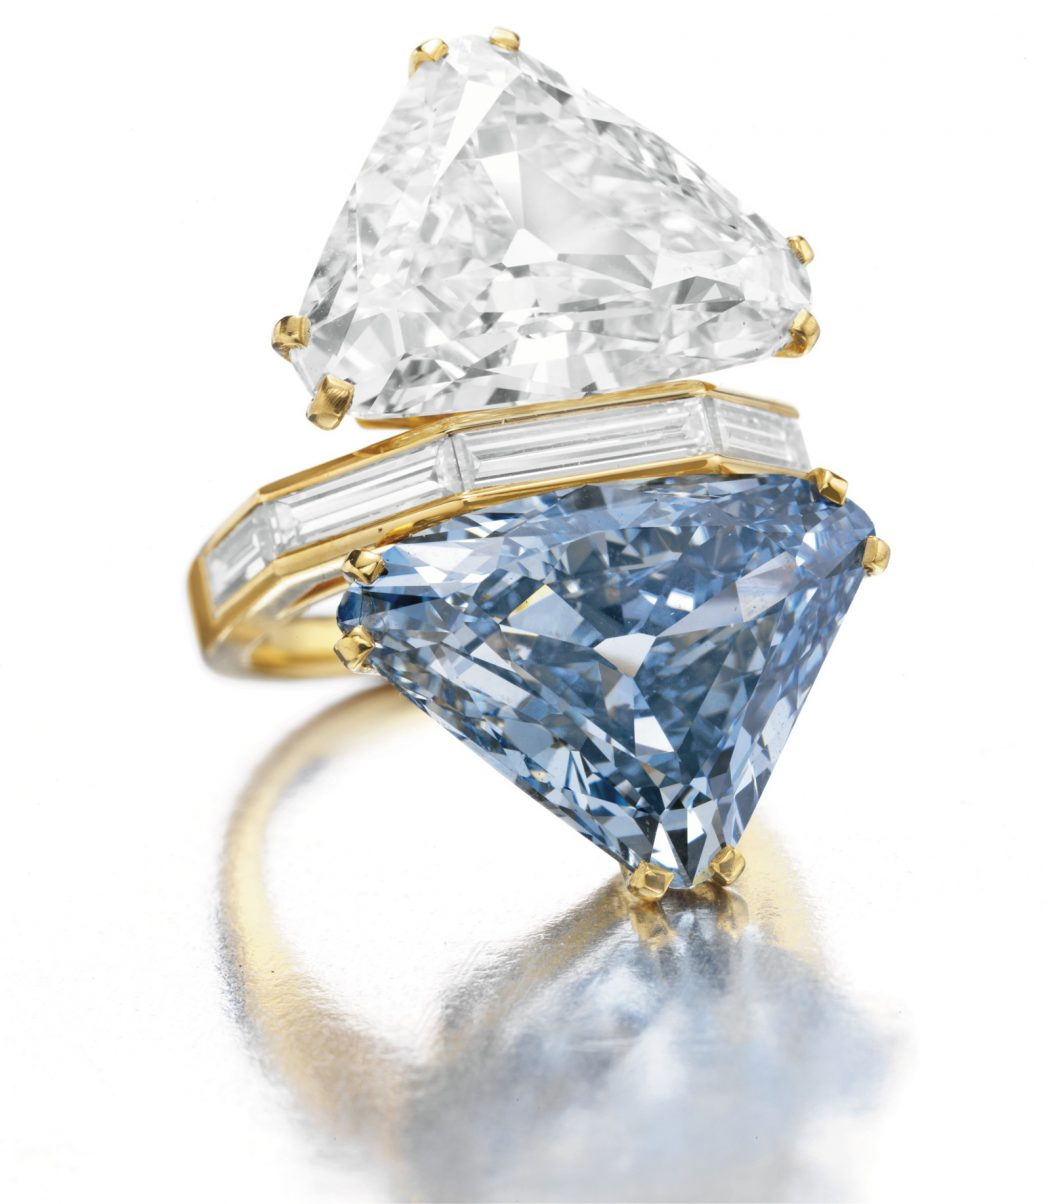 the-bvlgari-blue-diamond-2 What Do You Say about These Rare and Precious Rings?!